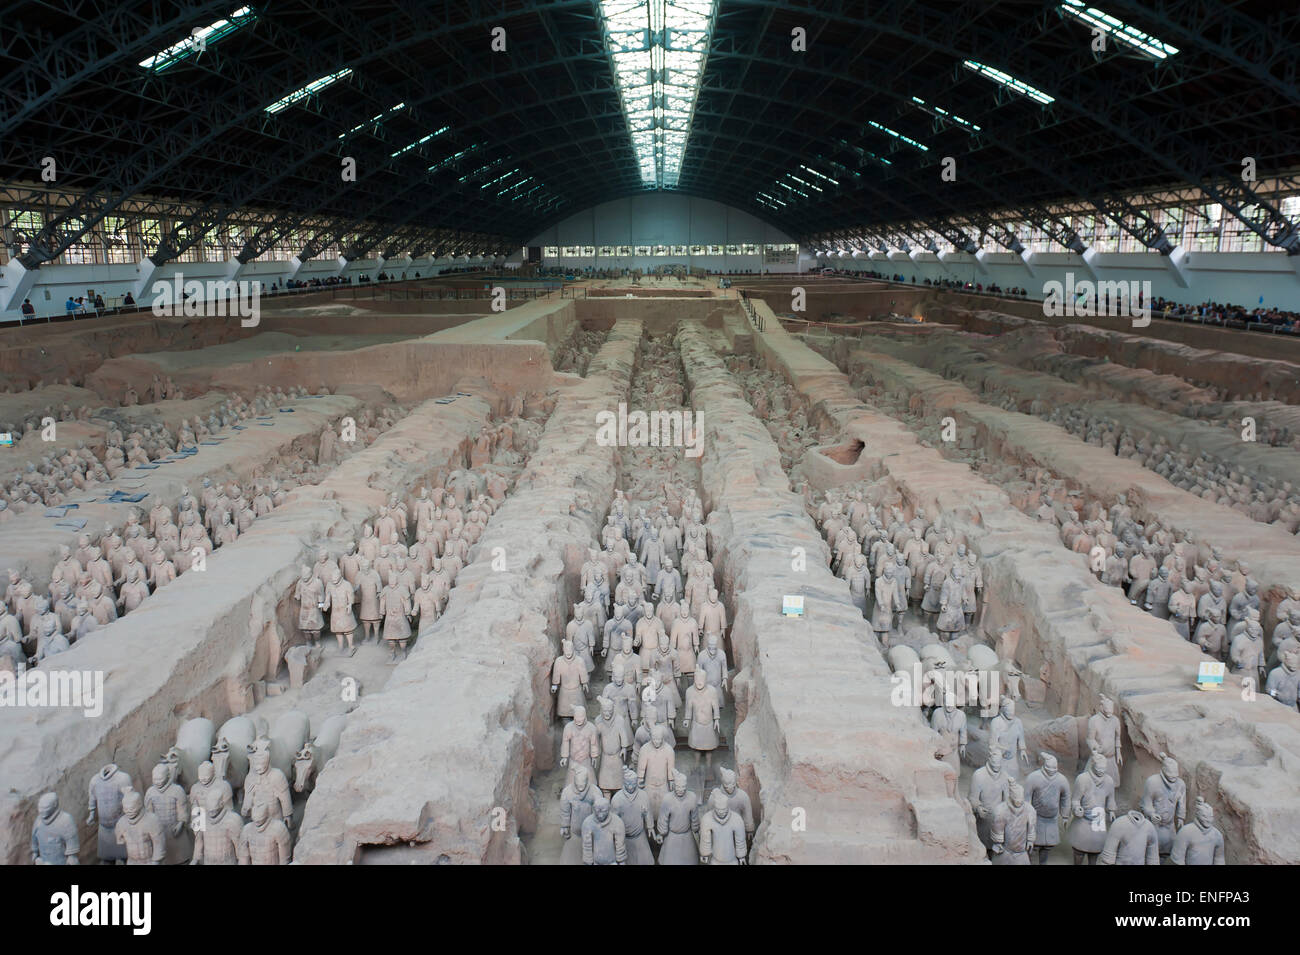 Great Hall, covered first pit, standing warrior figures, Emperor Qin Shi Huang Mausoleum, Terracotta Army, Xi'an - Stock Image